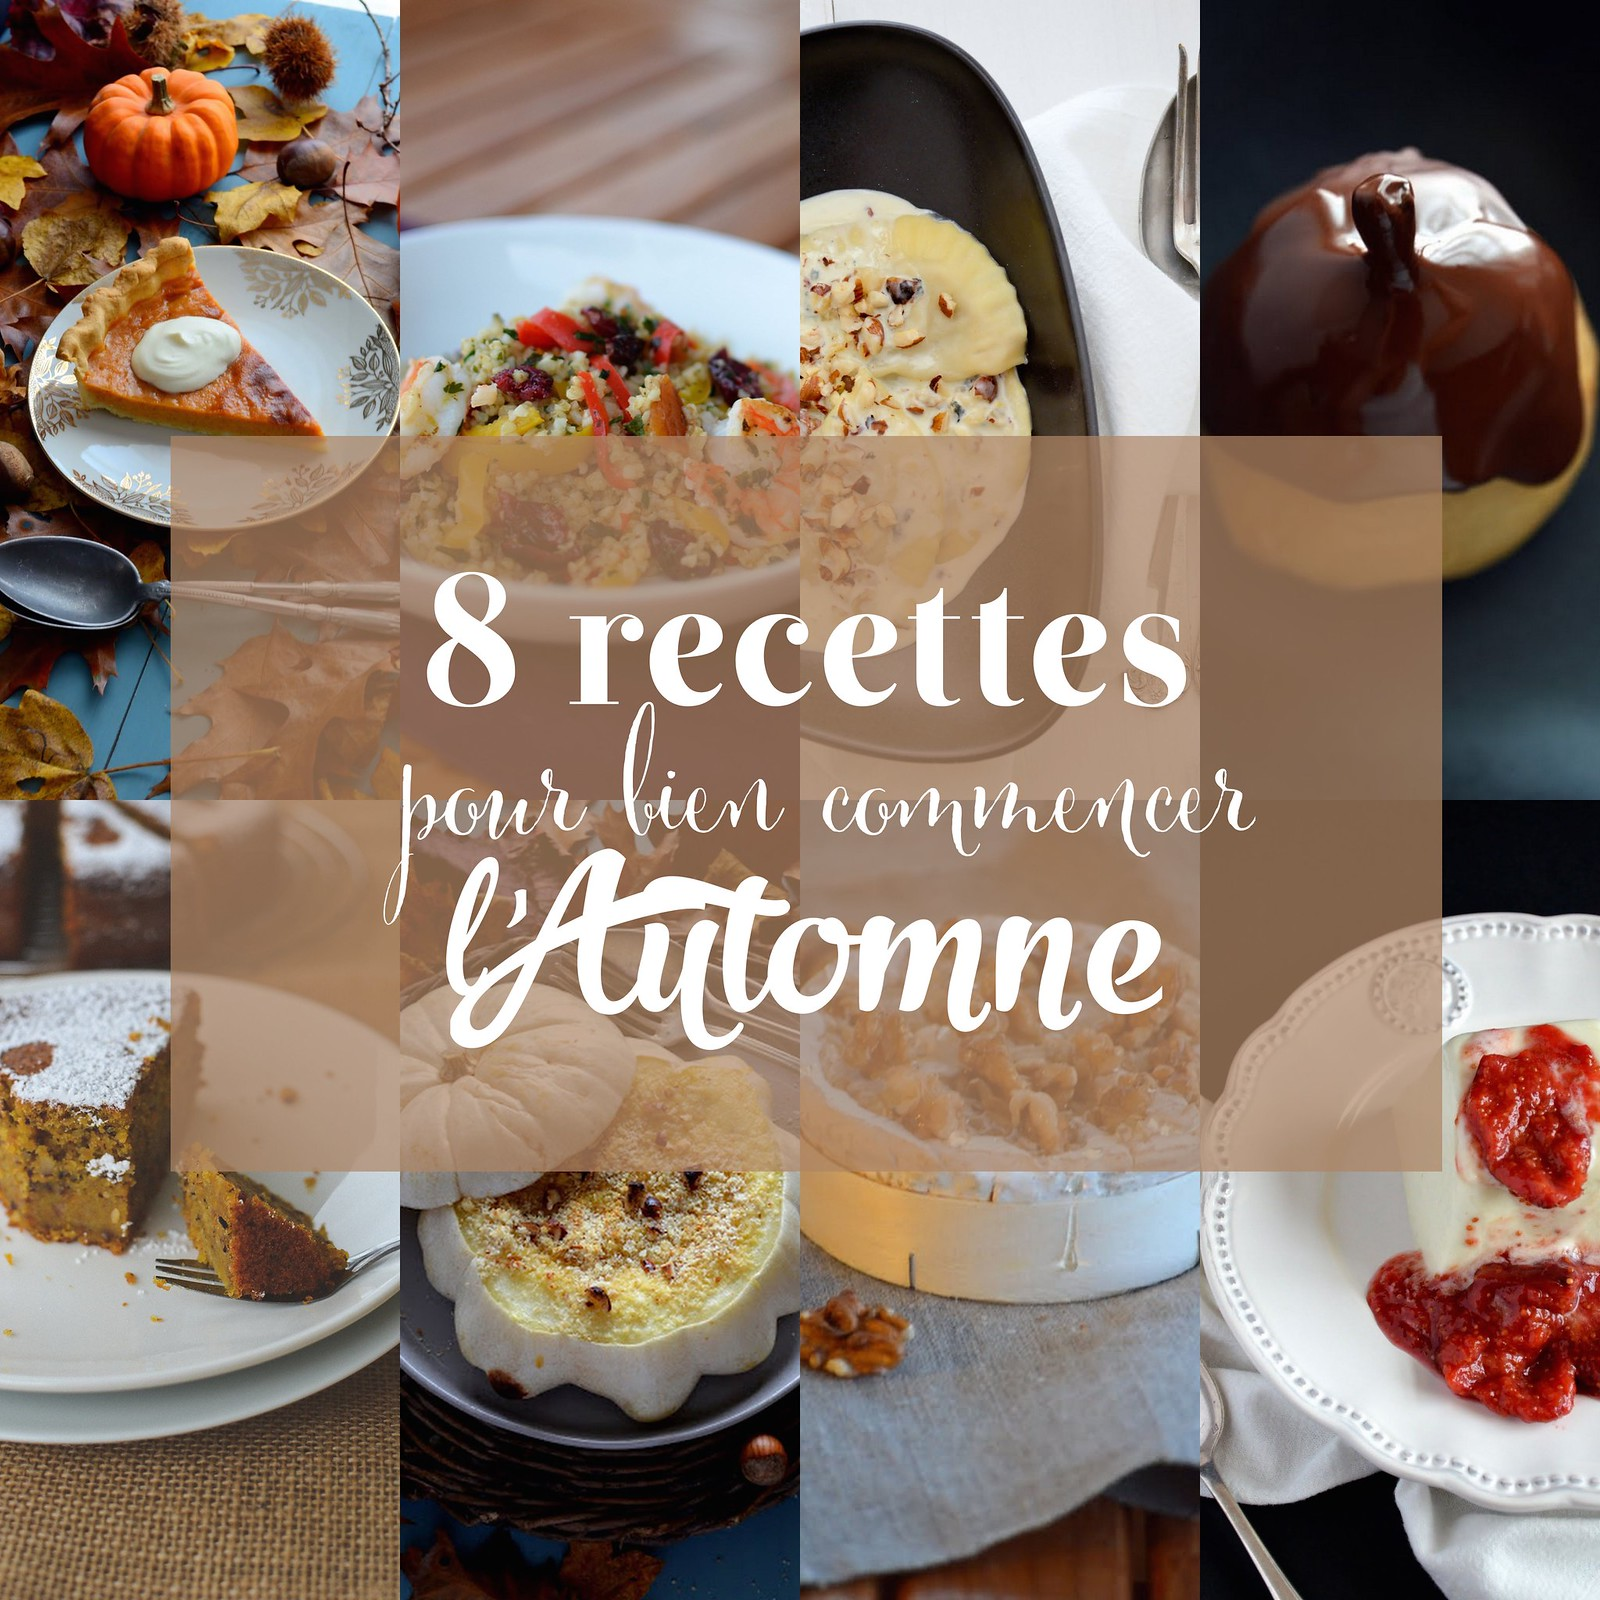 8 recettes pour bien commencer l'Automne / 8 awesome recipes to begin with Fall